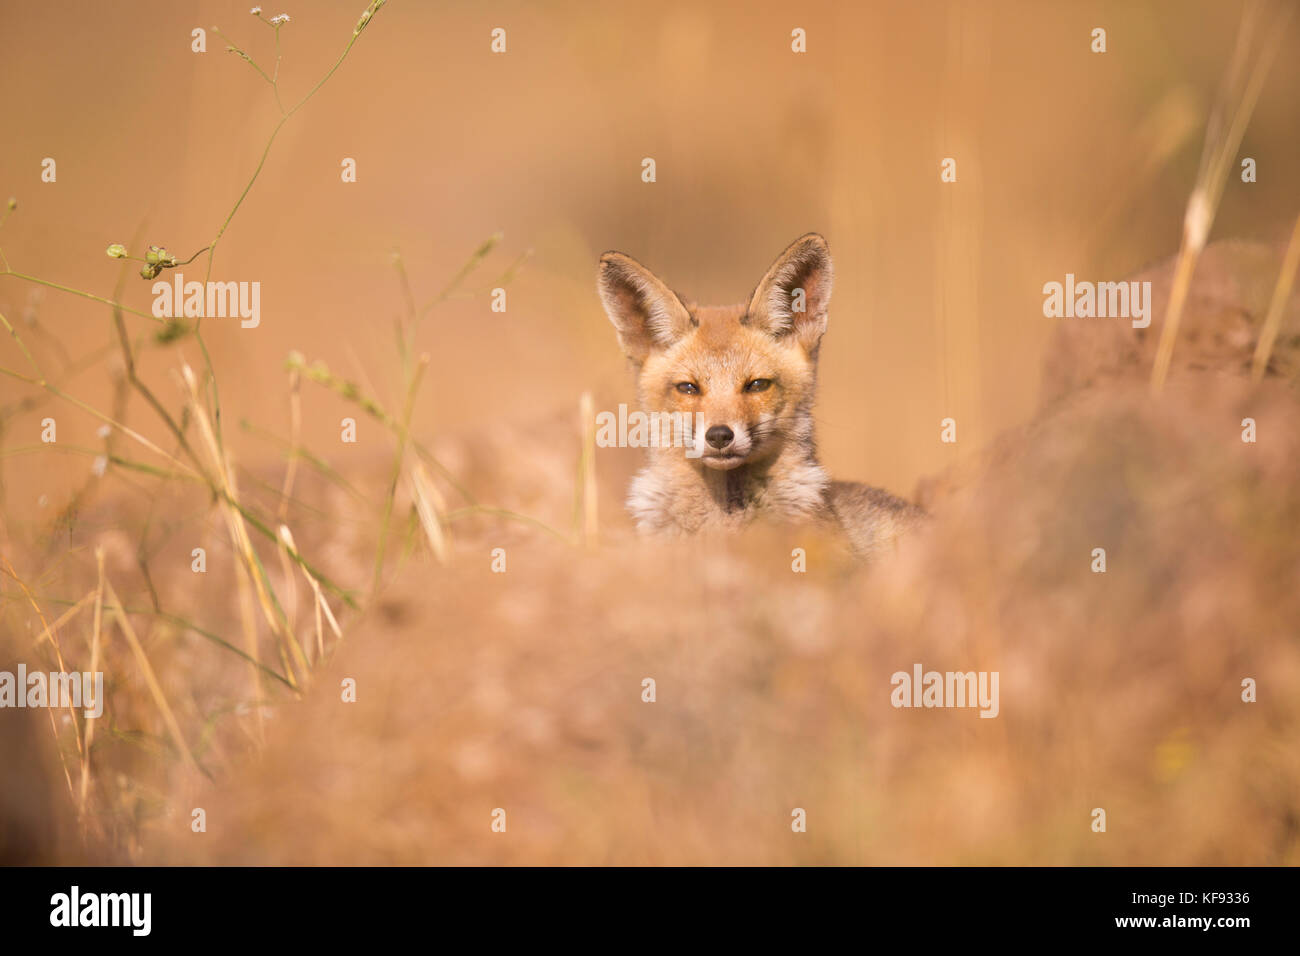 Juvenile Red Fox (Vulpes vulpes). The Red Fox is the largest of the true foxes, as well as being the most geographically - Stock Image